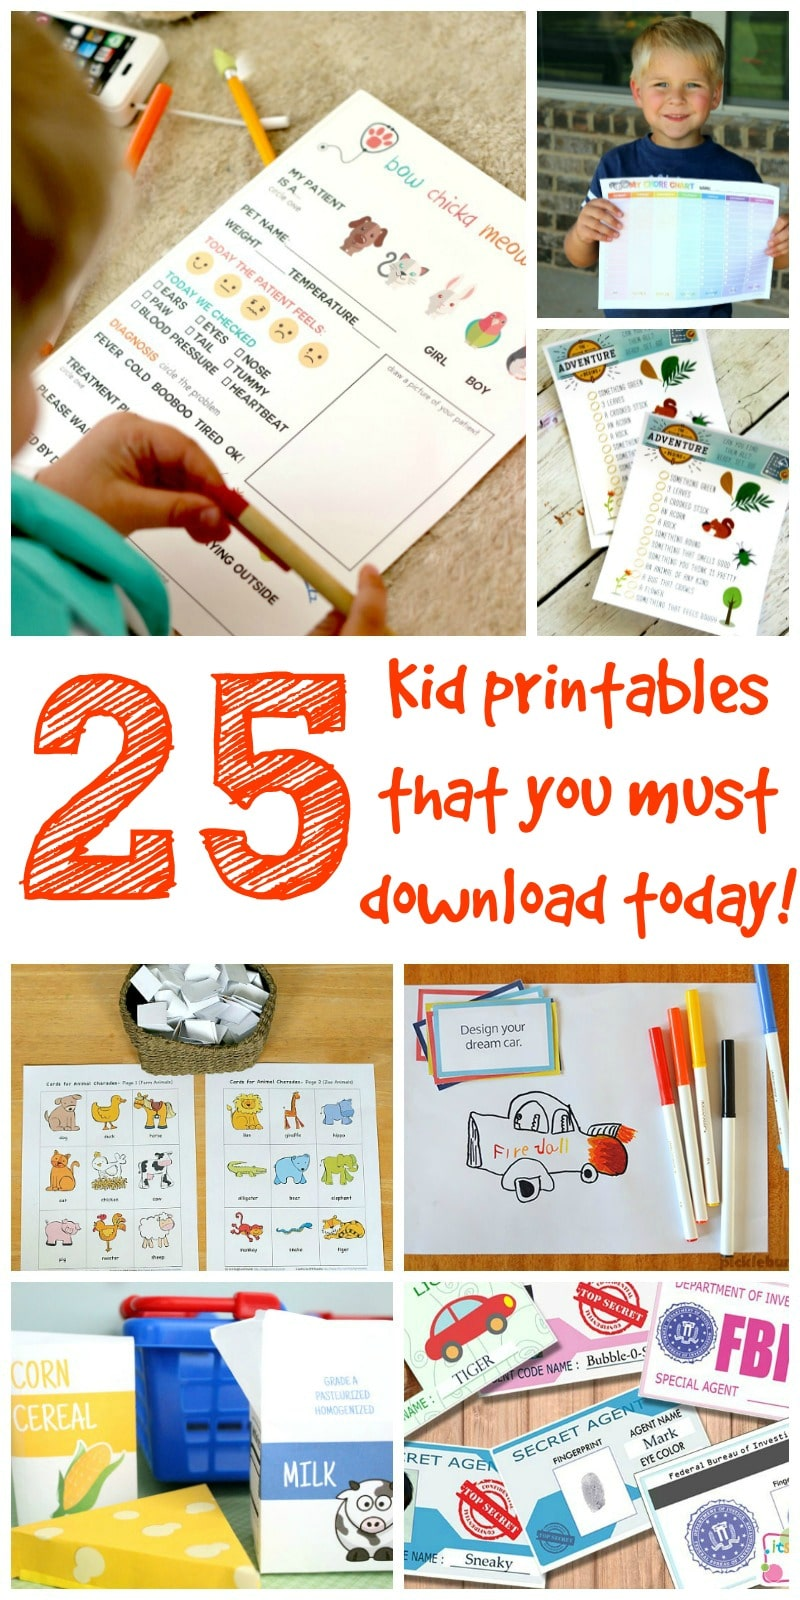 25 Kid Printables that you Must Download today, Kid Printable Activities, Pretend Play, Preschool Fun! Top 25 curated so you can download and get started